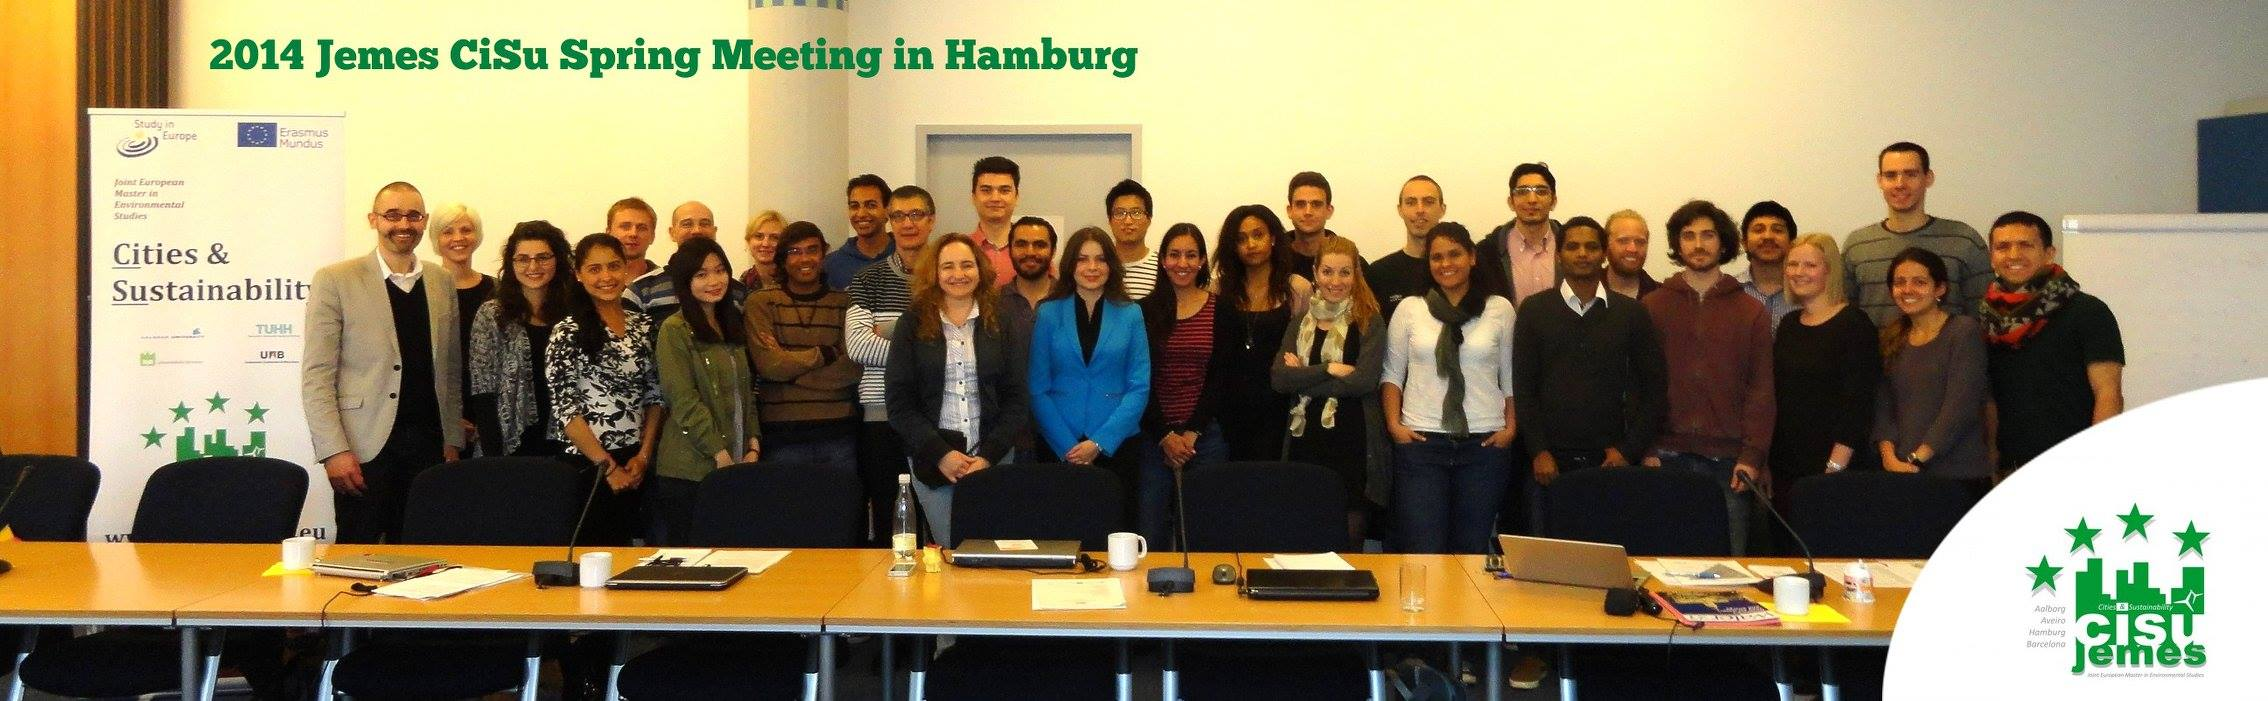 JEMES CiSu Spring Meeting Hamburg 2014